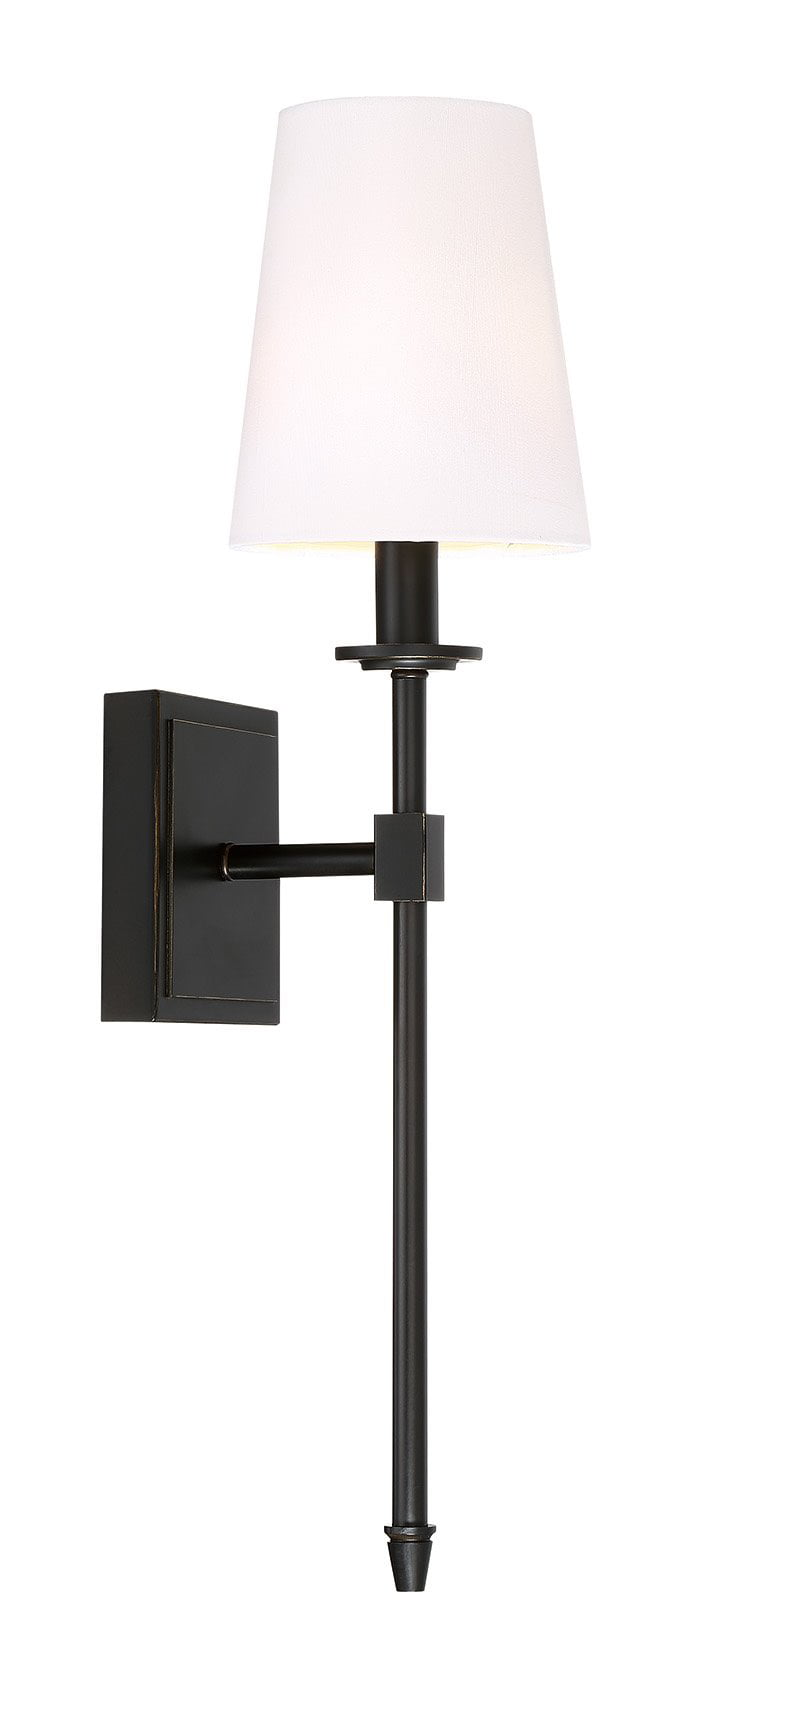 """Revel Torche 20"""" Wall Sconce Wall Light + Linen Shade, Oil-Rubbed Bronze Finish by"""